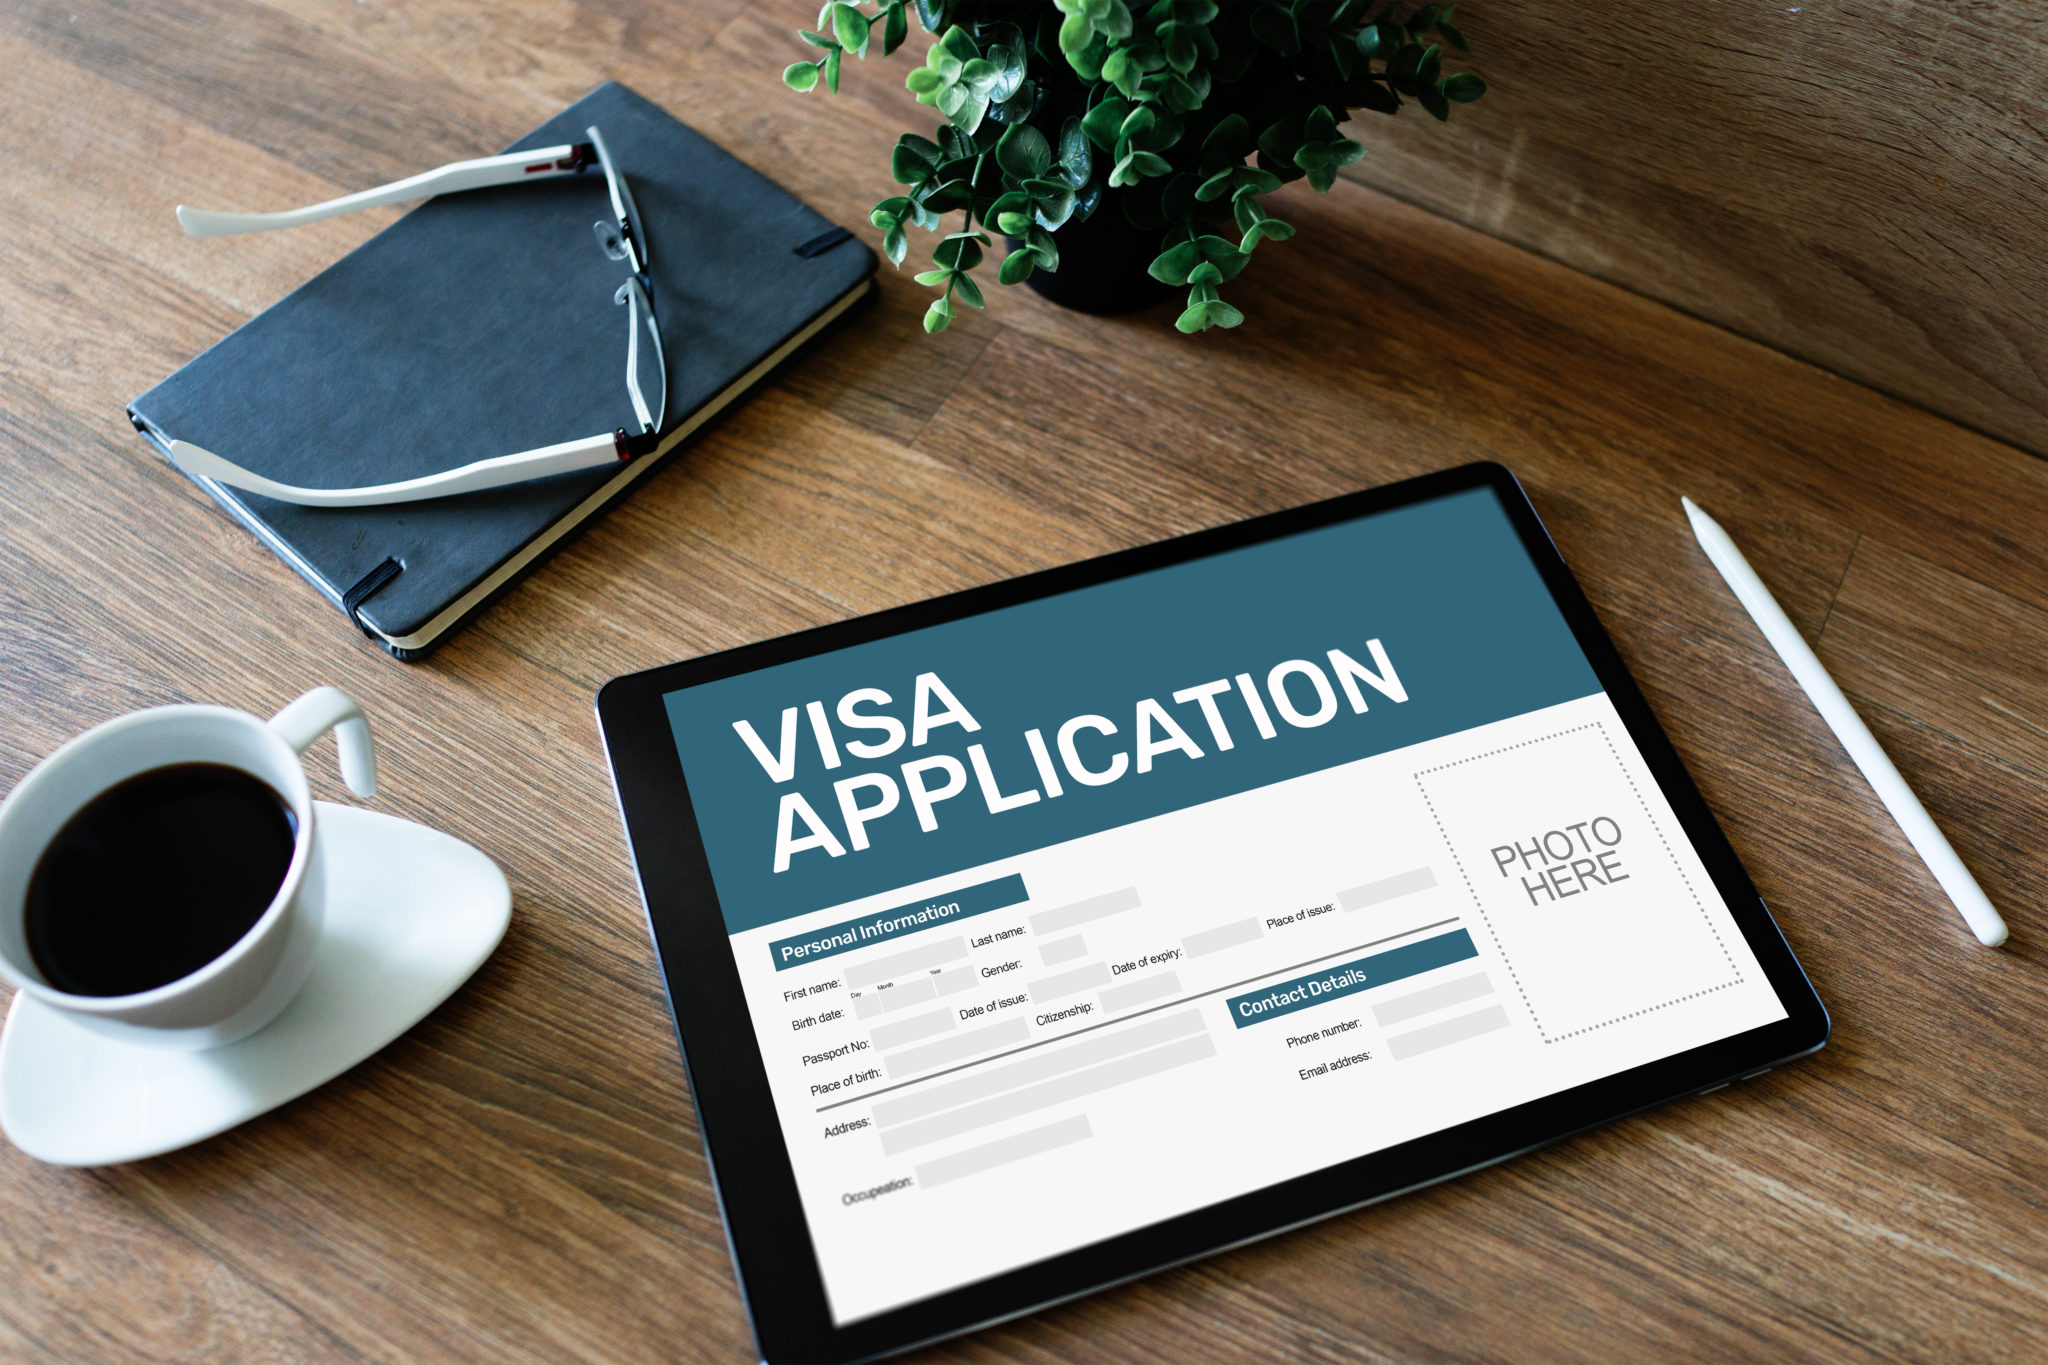 2. L-1 Visas - Dallas Immigration Attorney